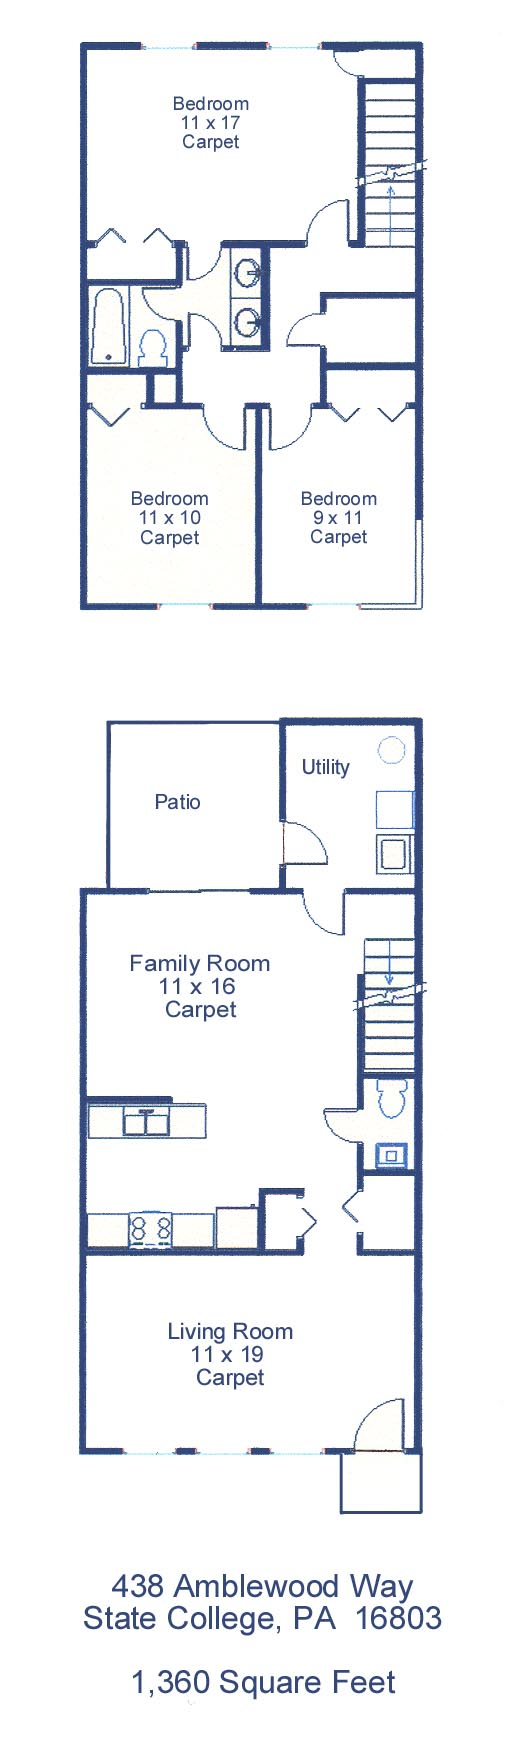 Floor plan of the professional 3-bedroom townhouse for rent at 438 Amblewood Way in State College PA